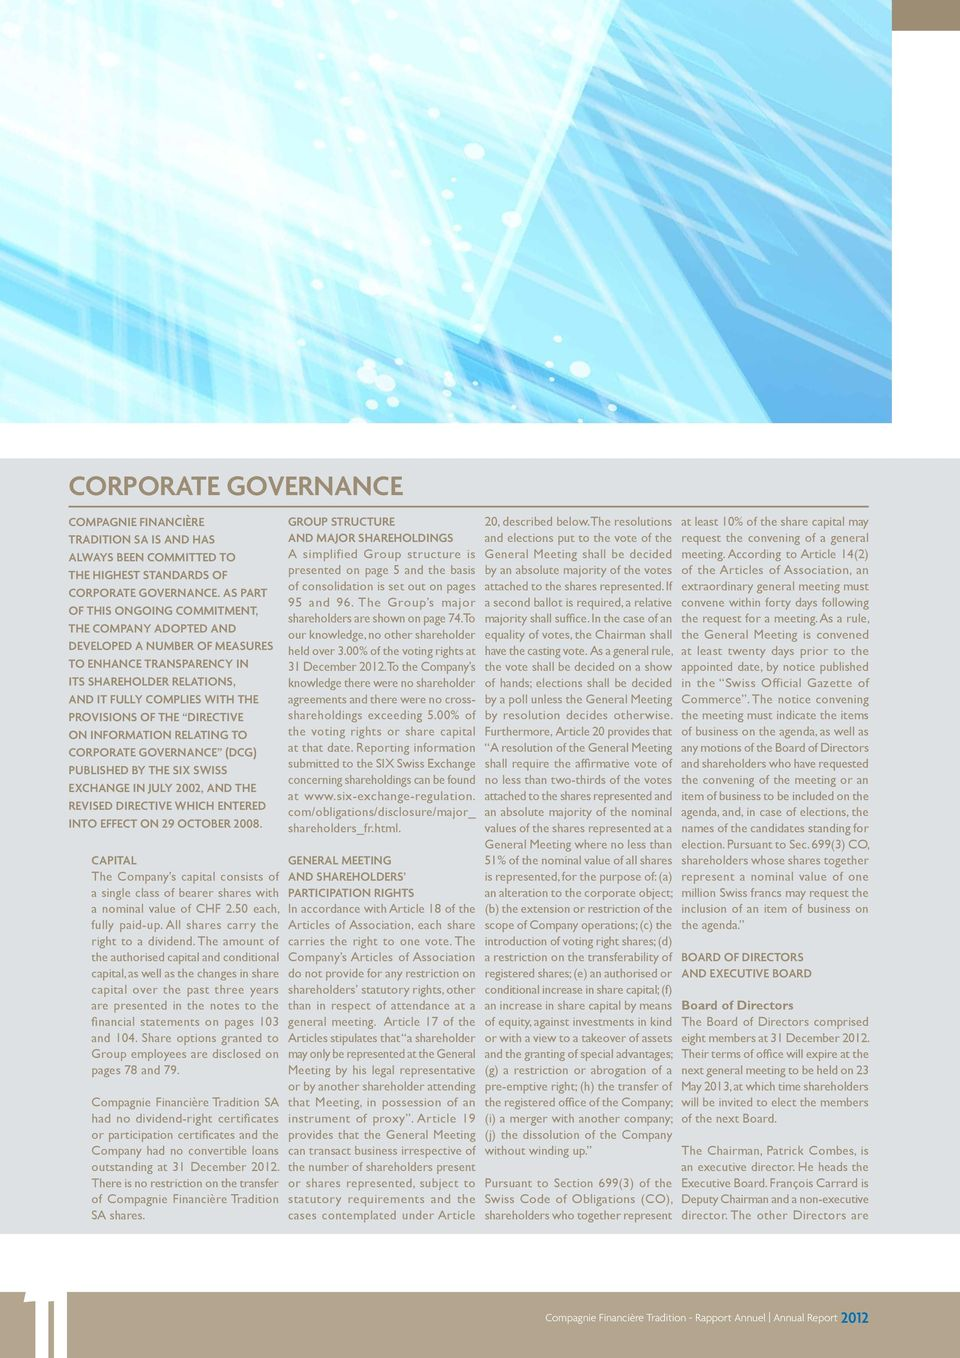 Directive on Information Relating to Corporate Governance (DCG) published by the SIX Swiss Exchange in July 2002, and the revised Directive which entered into effect on 29 October 2008.